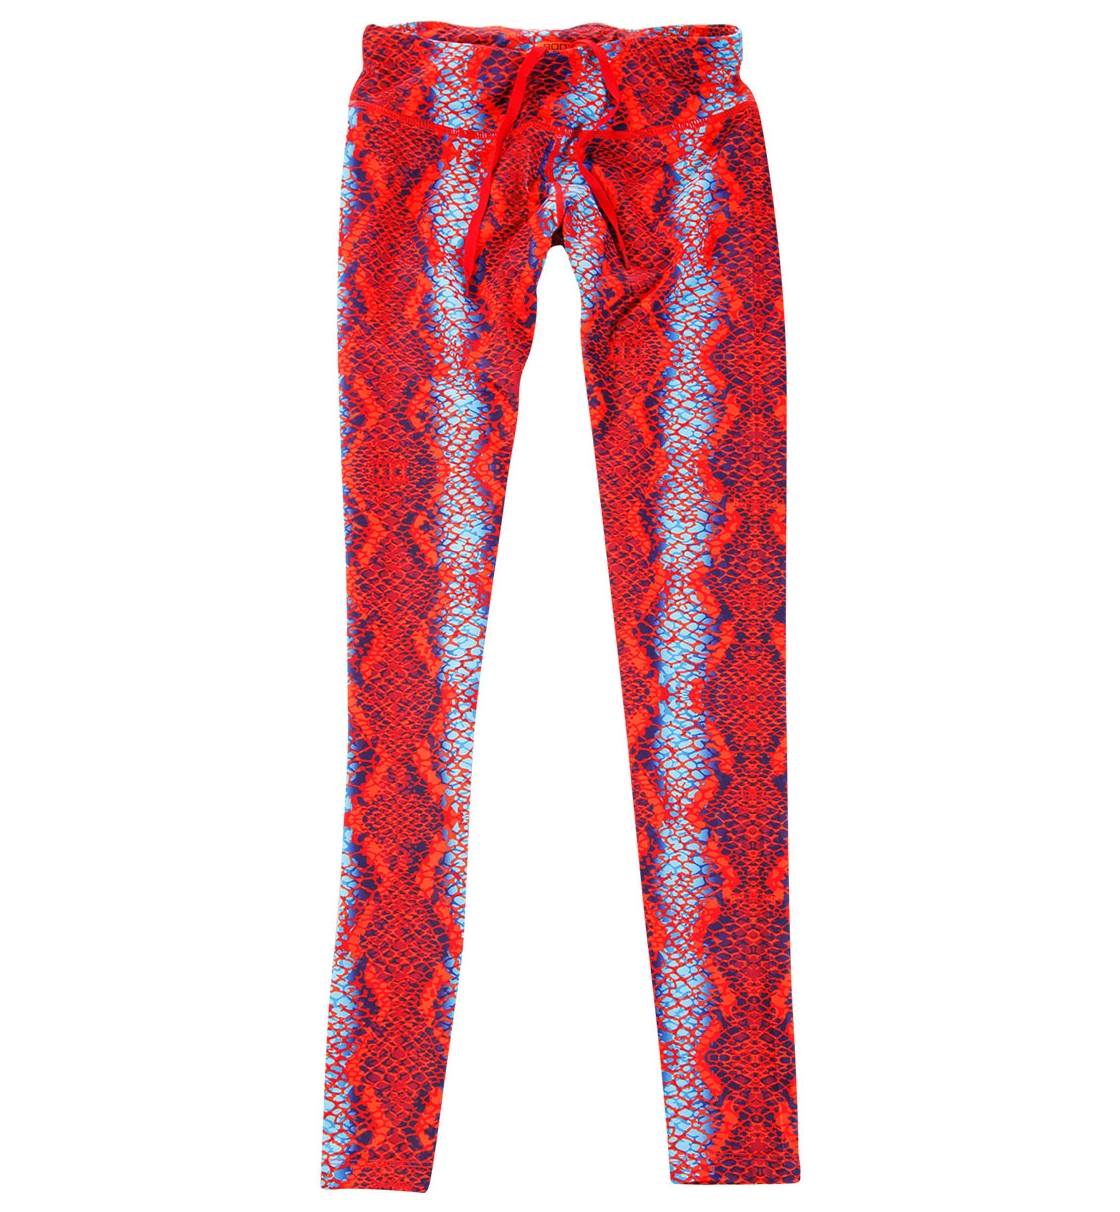 Body Action Women Allover Printed Fitted Leggings